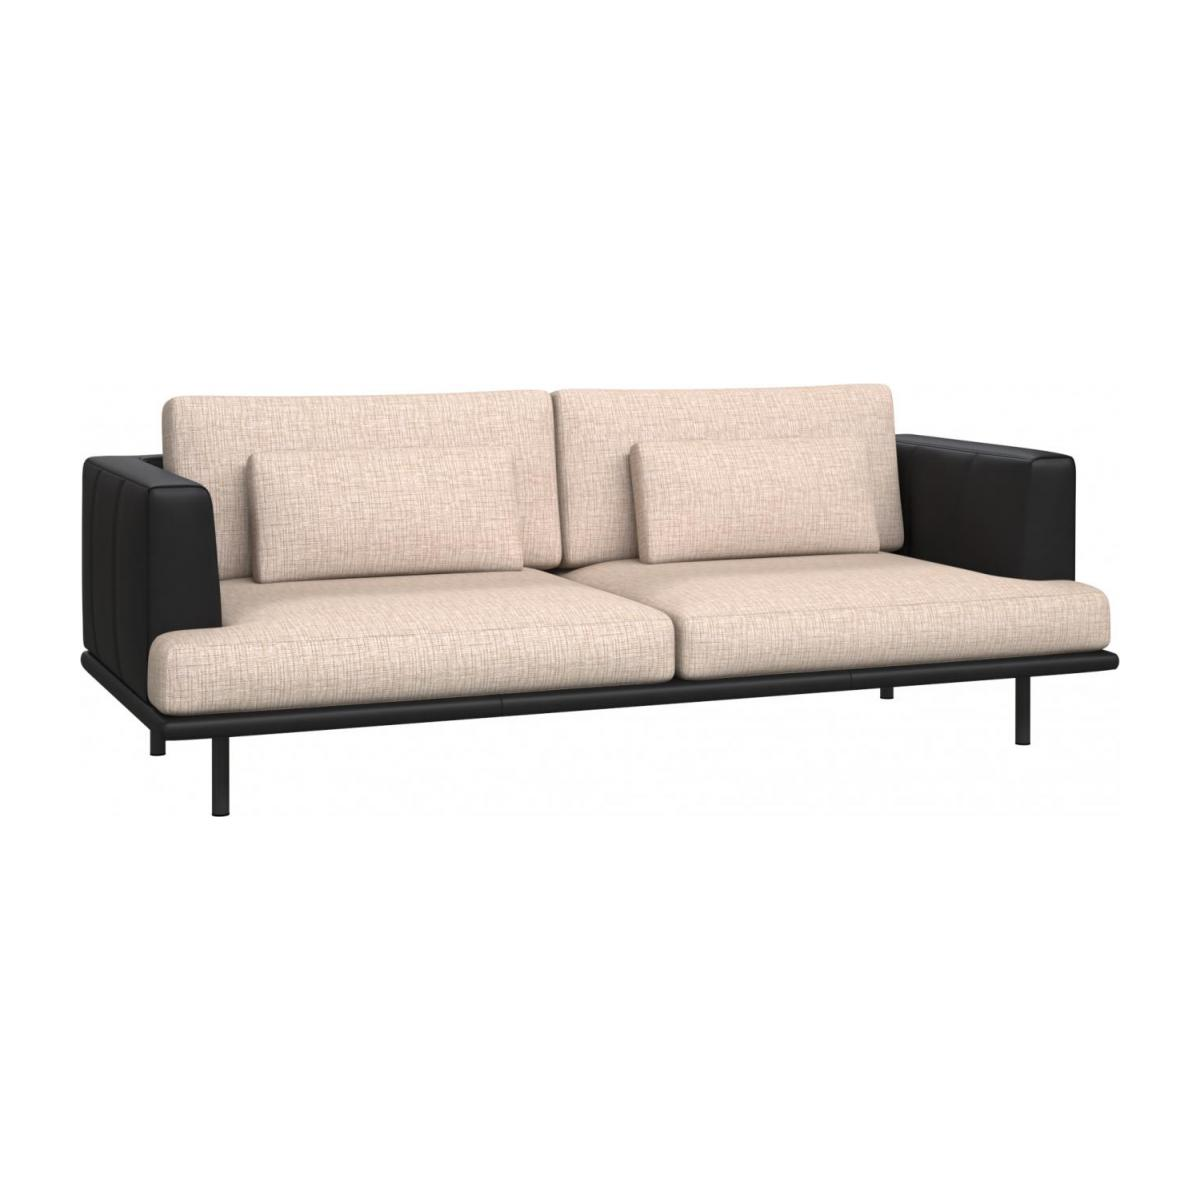 3 seater sofa in Ancio fabric, nature with base and armrests in black leather n°1